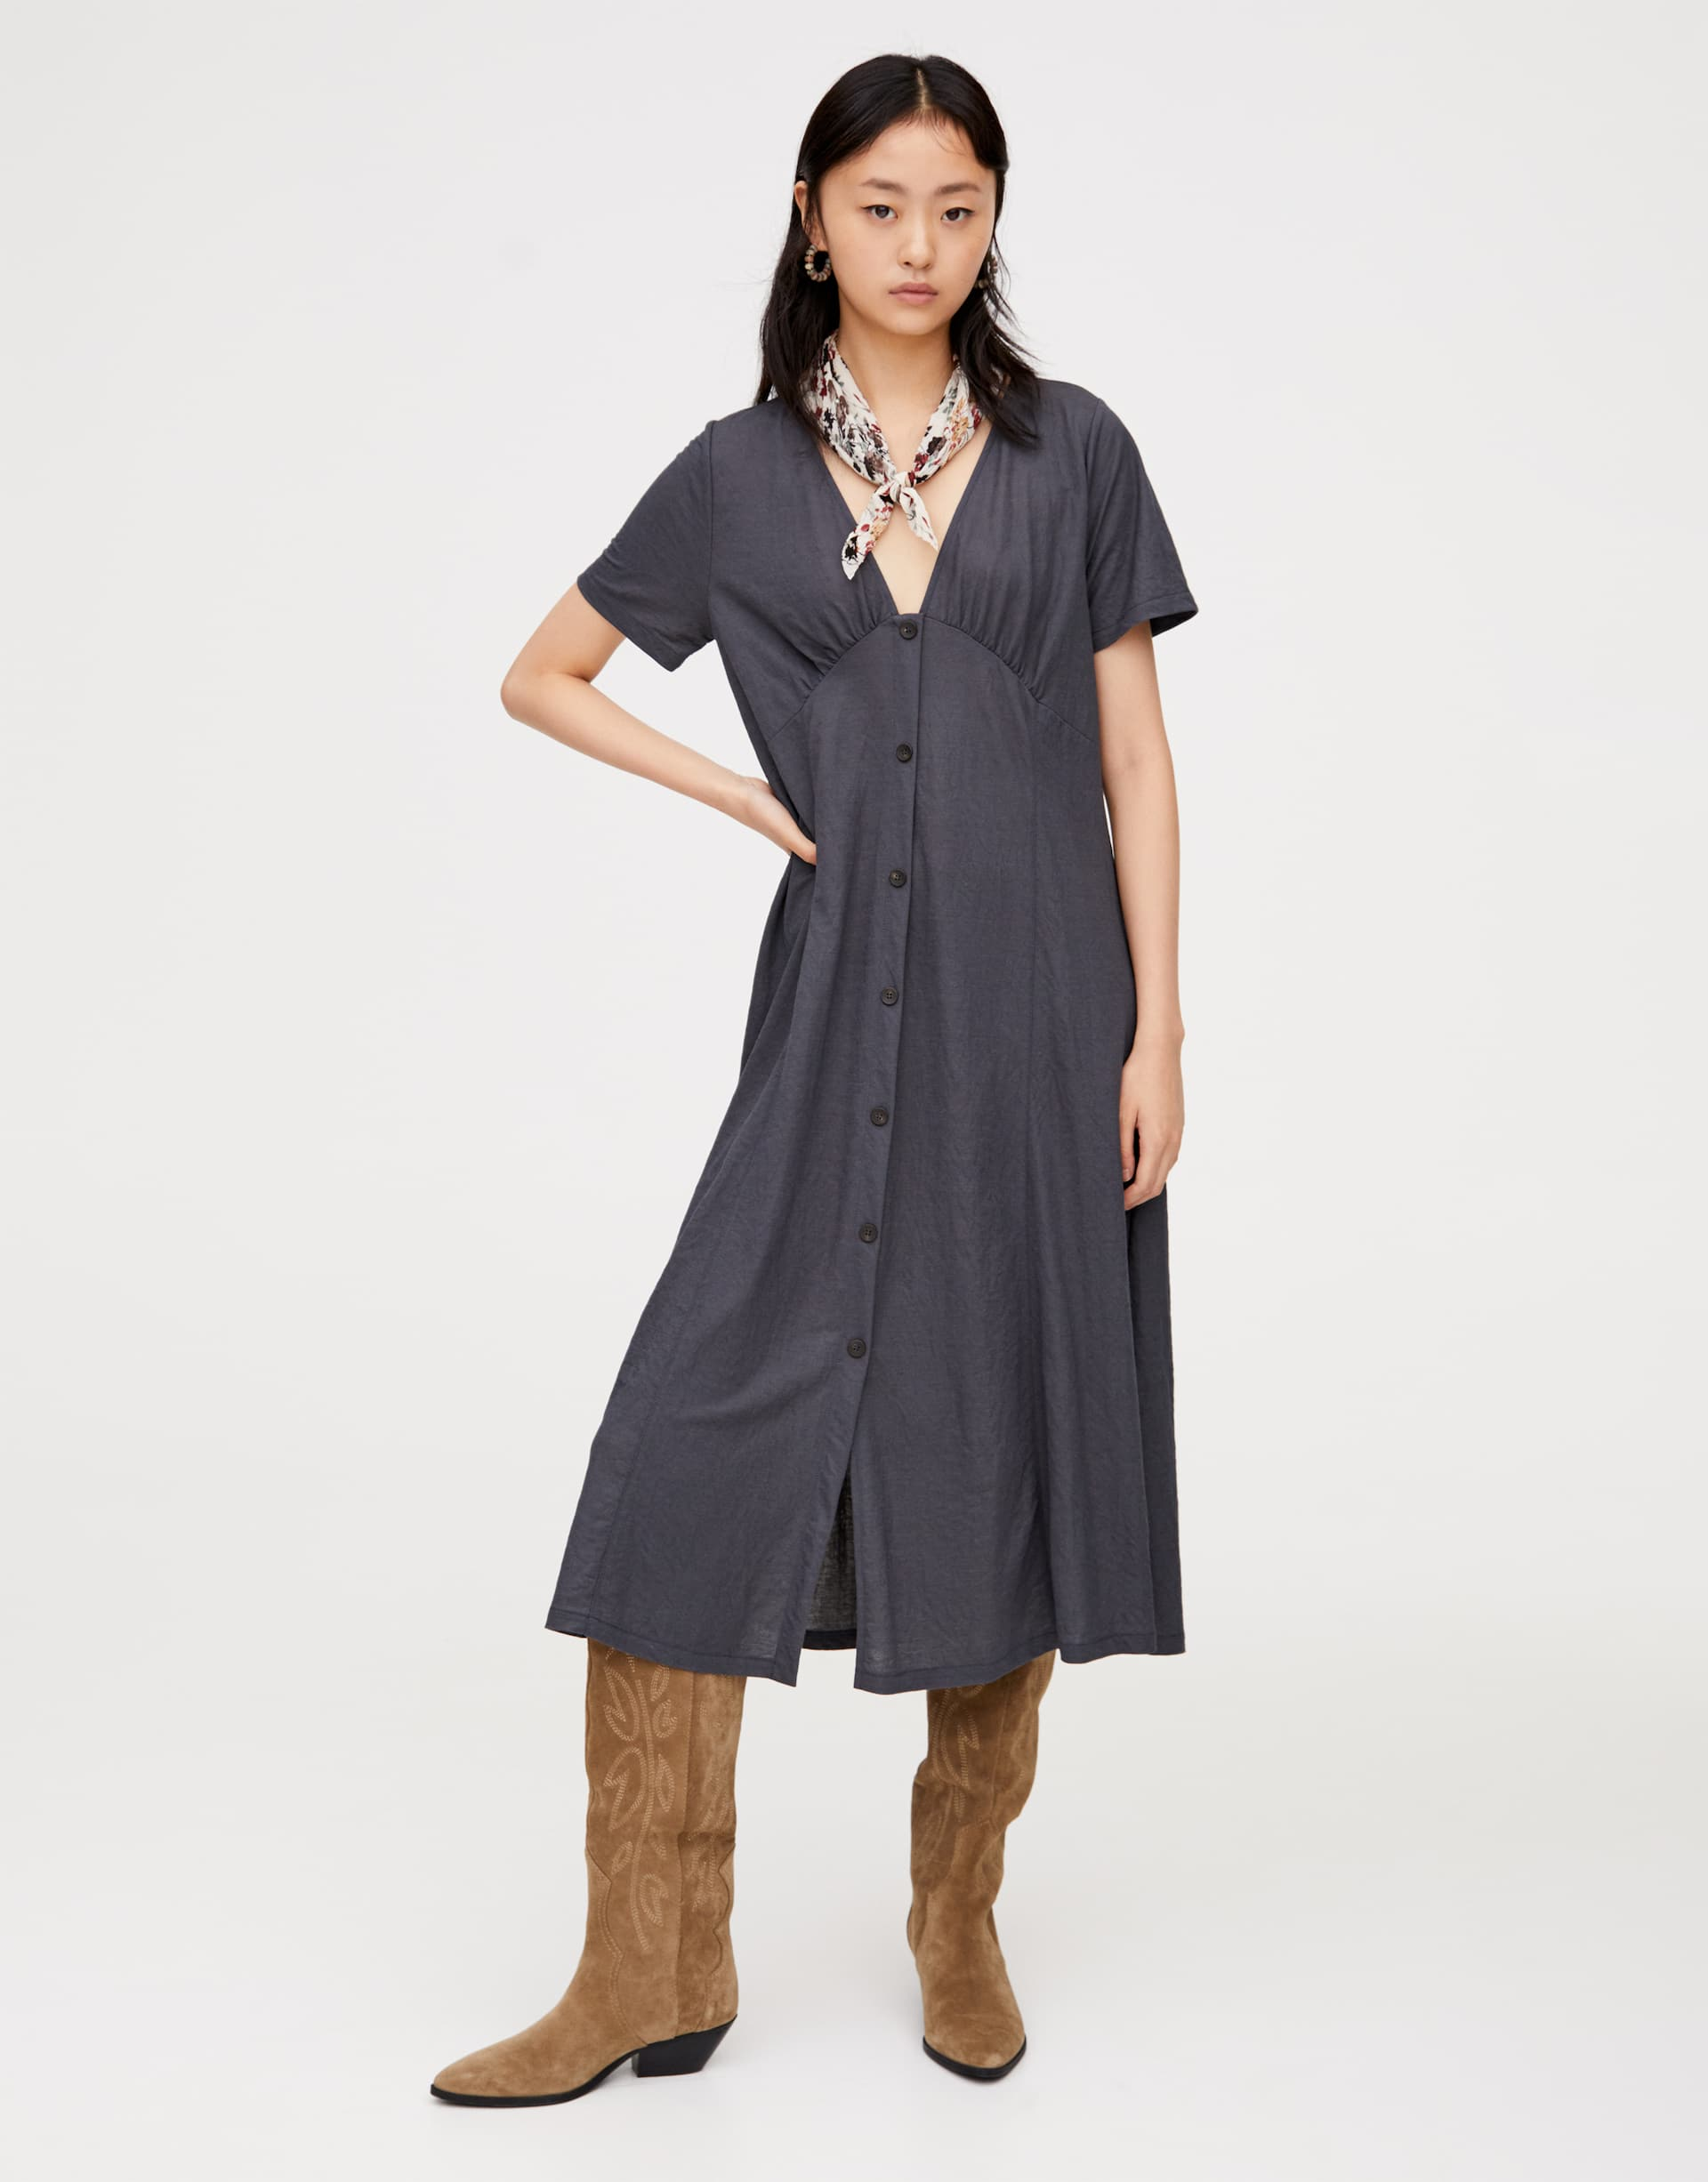 Midi dress with contrast buttons